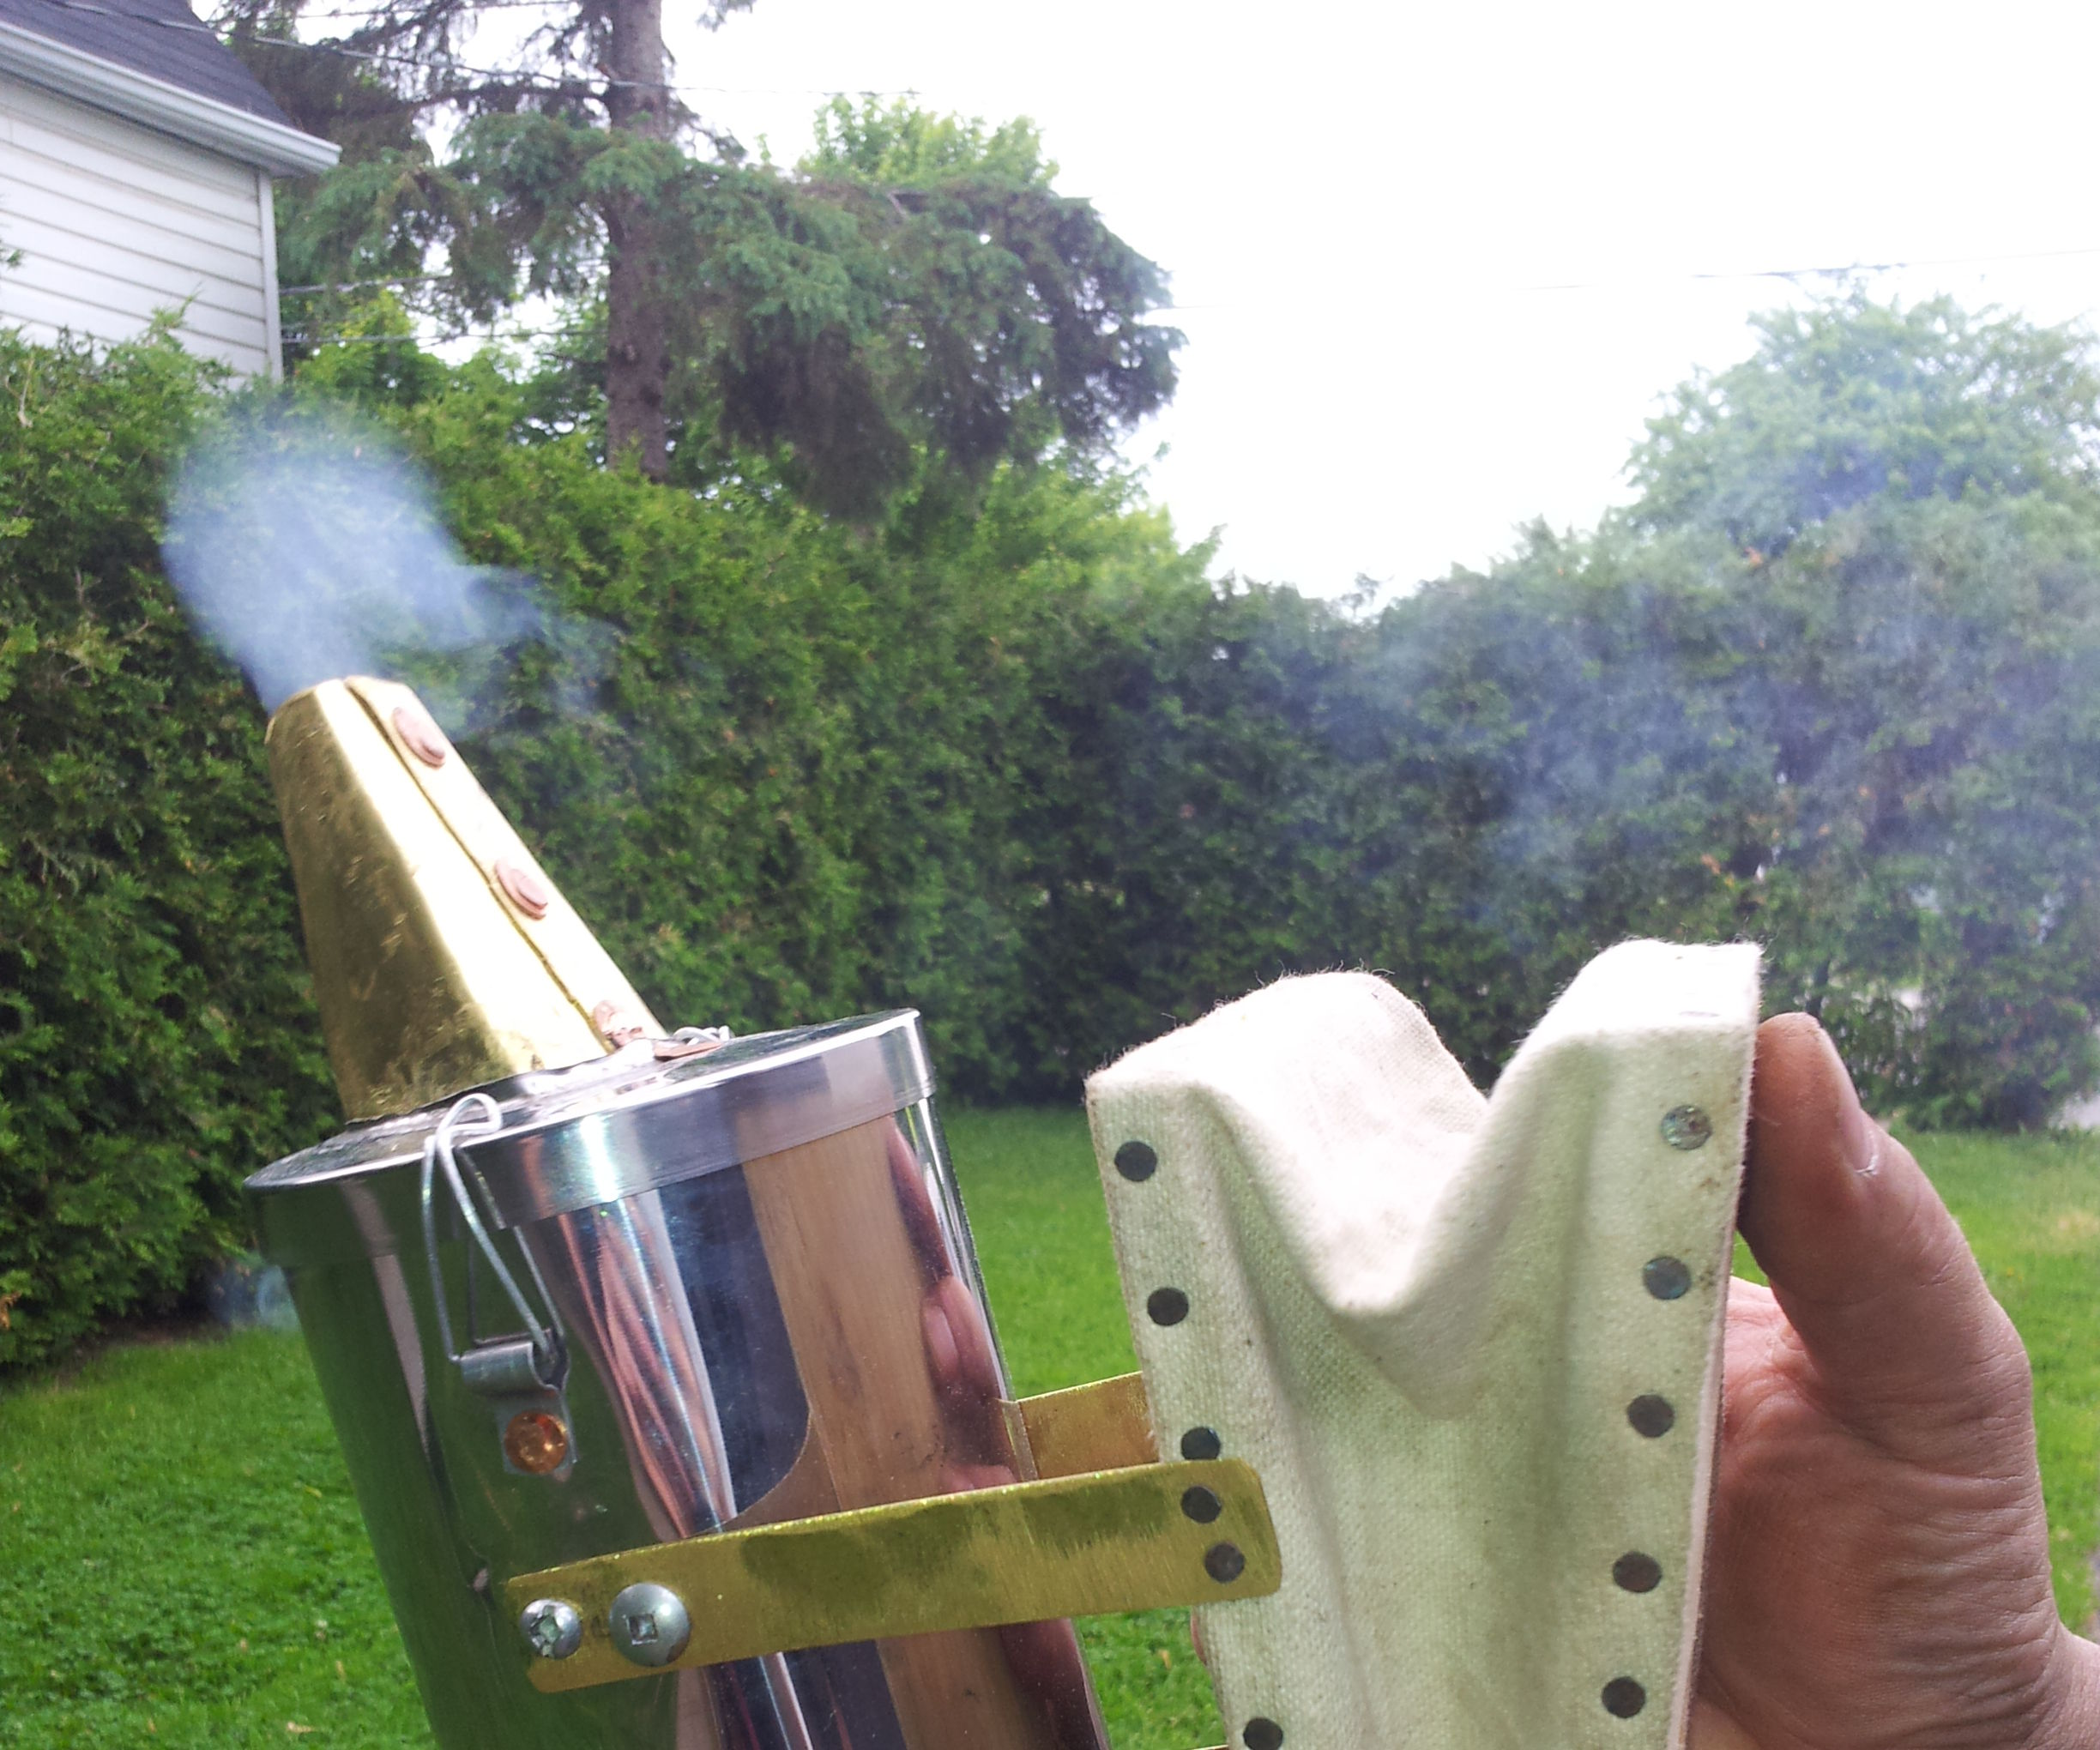 Bellows Bee Smoker For The Home Apiarist